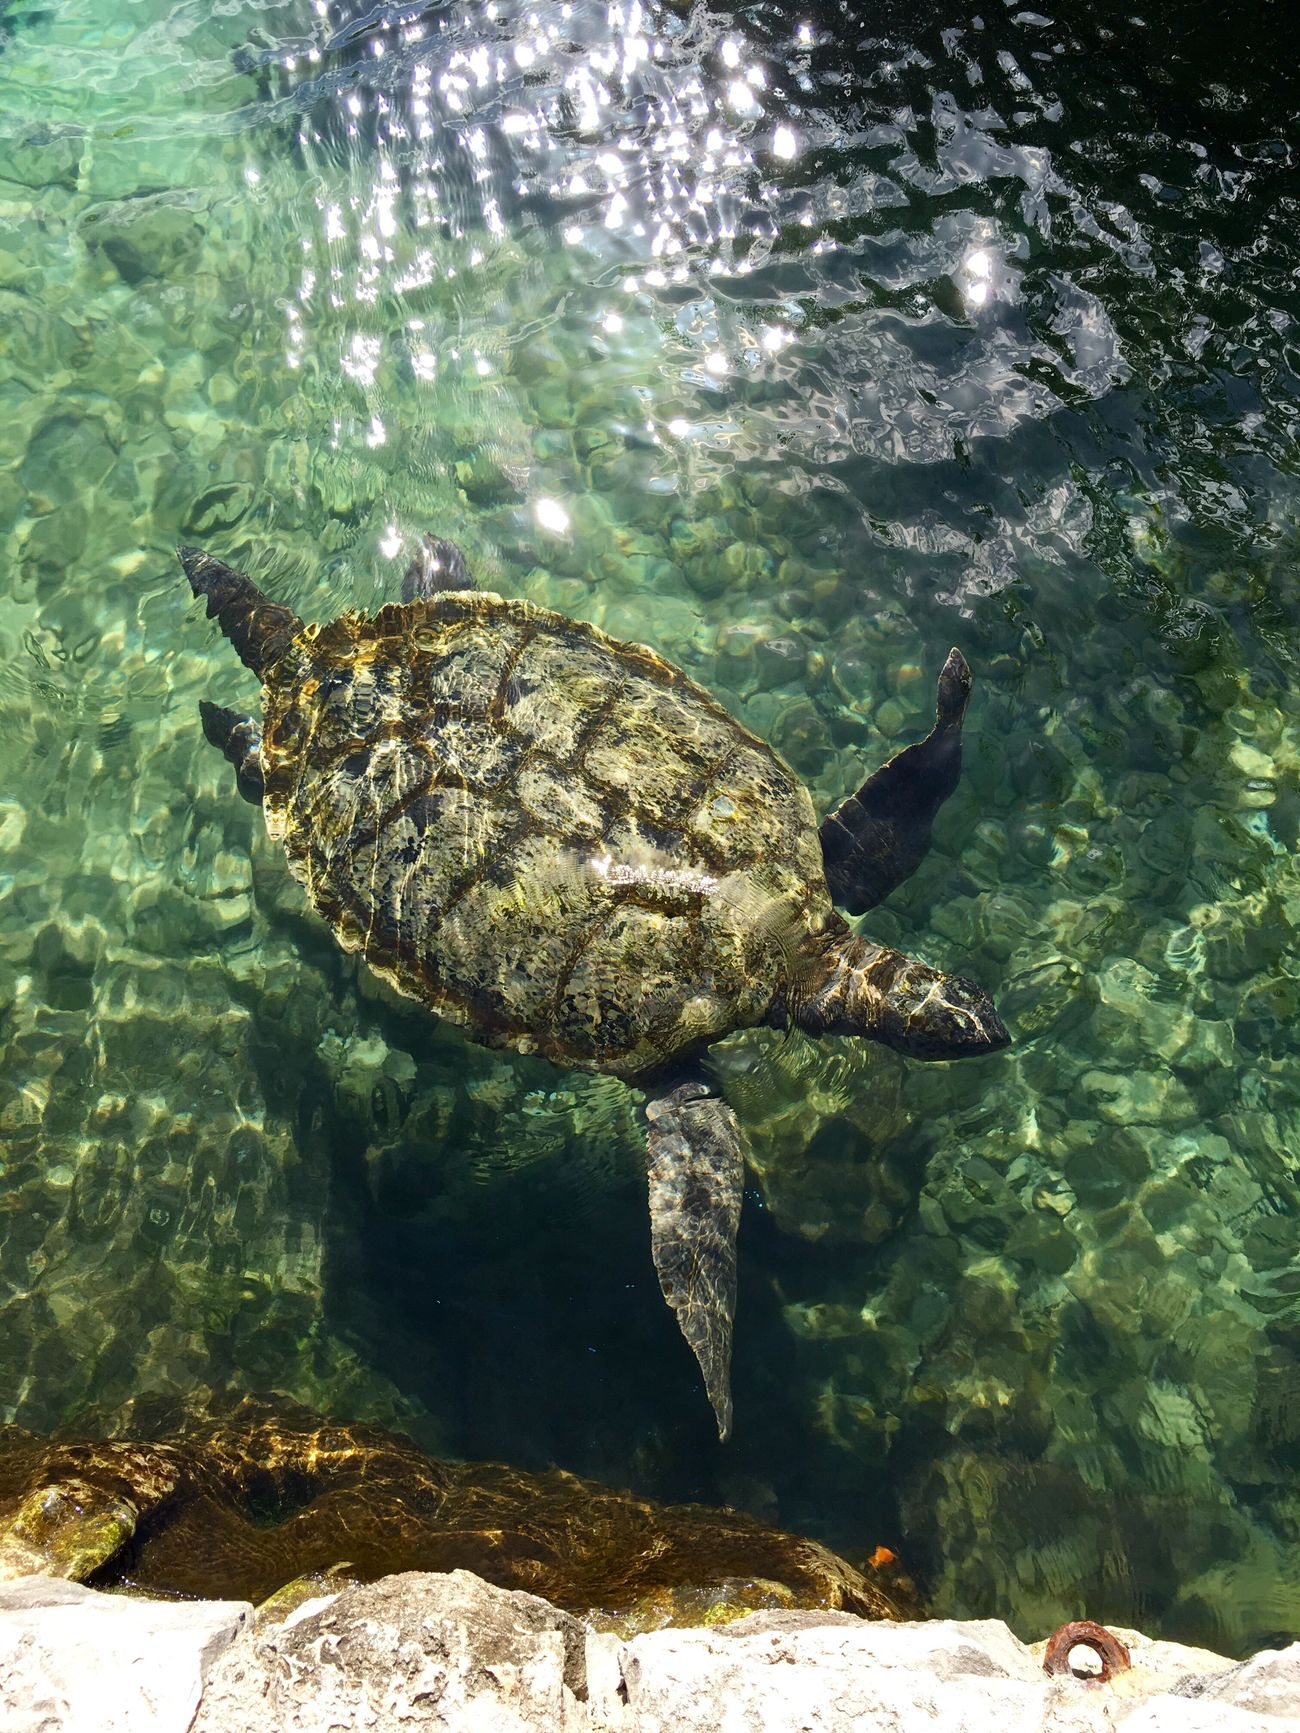 Wildlife Turtle Mexico Sea Turtle Enclosure Animal Themes Swimming Reptile Animals In The Wild Sea Life Sea Water Nature Underwater Animal Wildlife No People Day Outdoors Beauty In Nature UnderSea